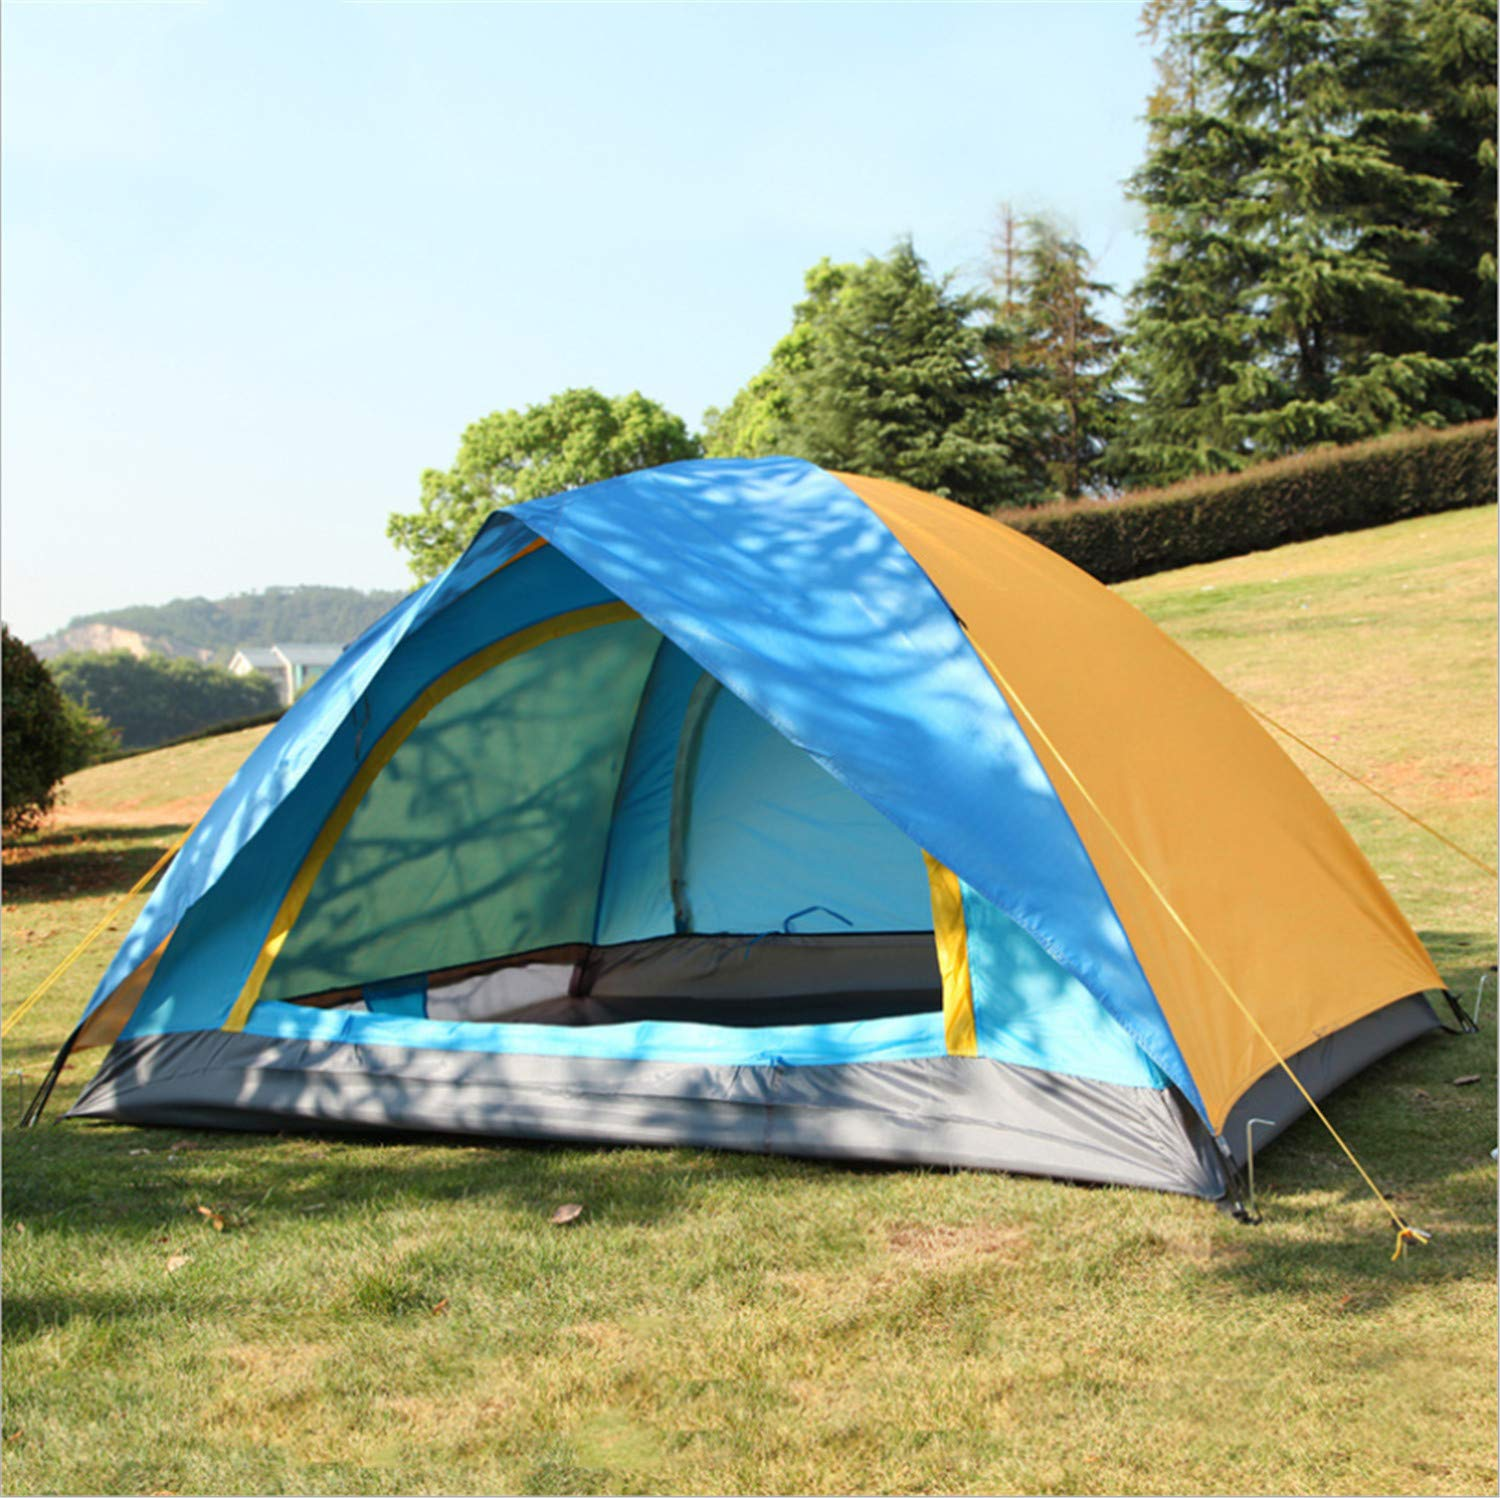 Camping Tent Outdoor Sports DoubleDecker Space Tourism Folding Camp Tents Portable Convenient 2 People